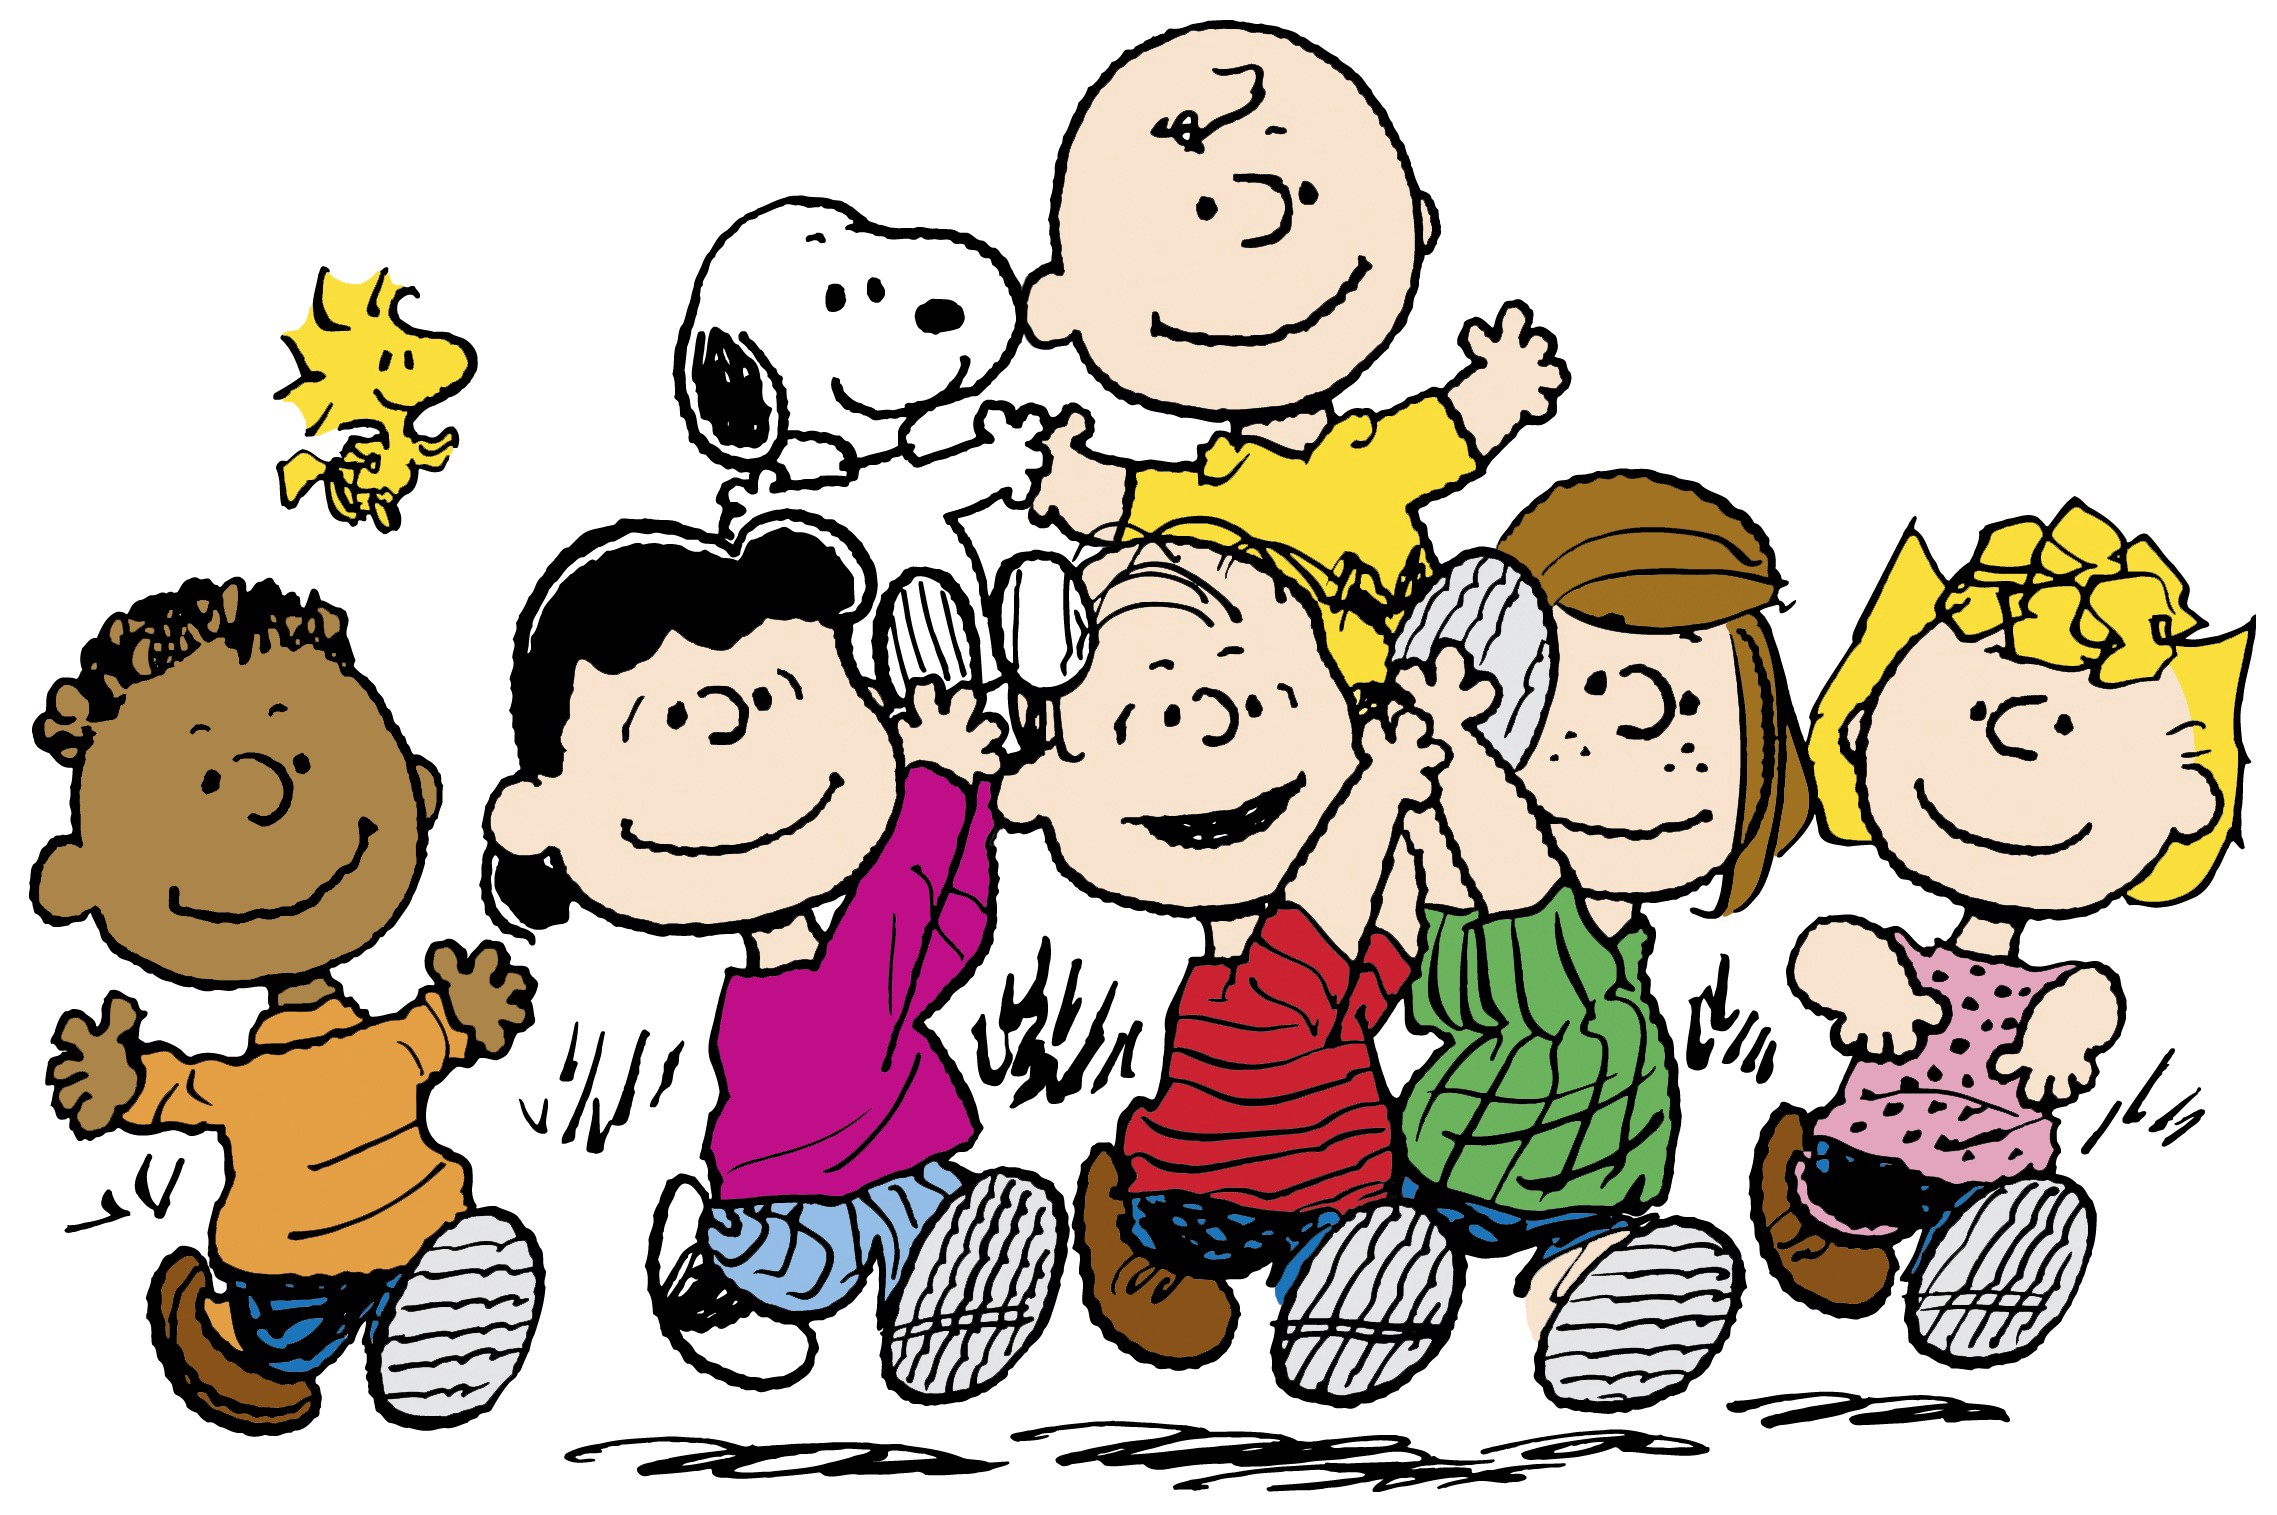 Merry Christmas Charlie Brown.Merry Christmas Charlie Brown Traveling Exhibition To Open